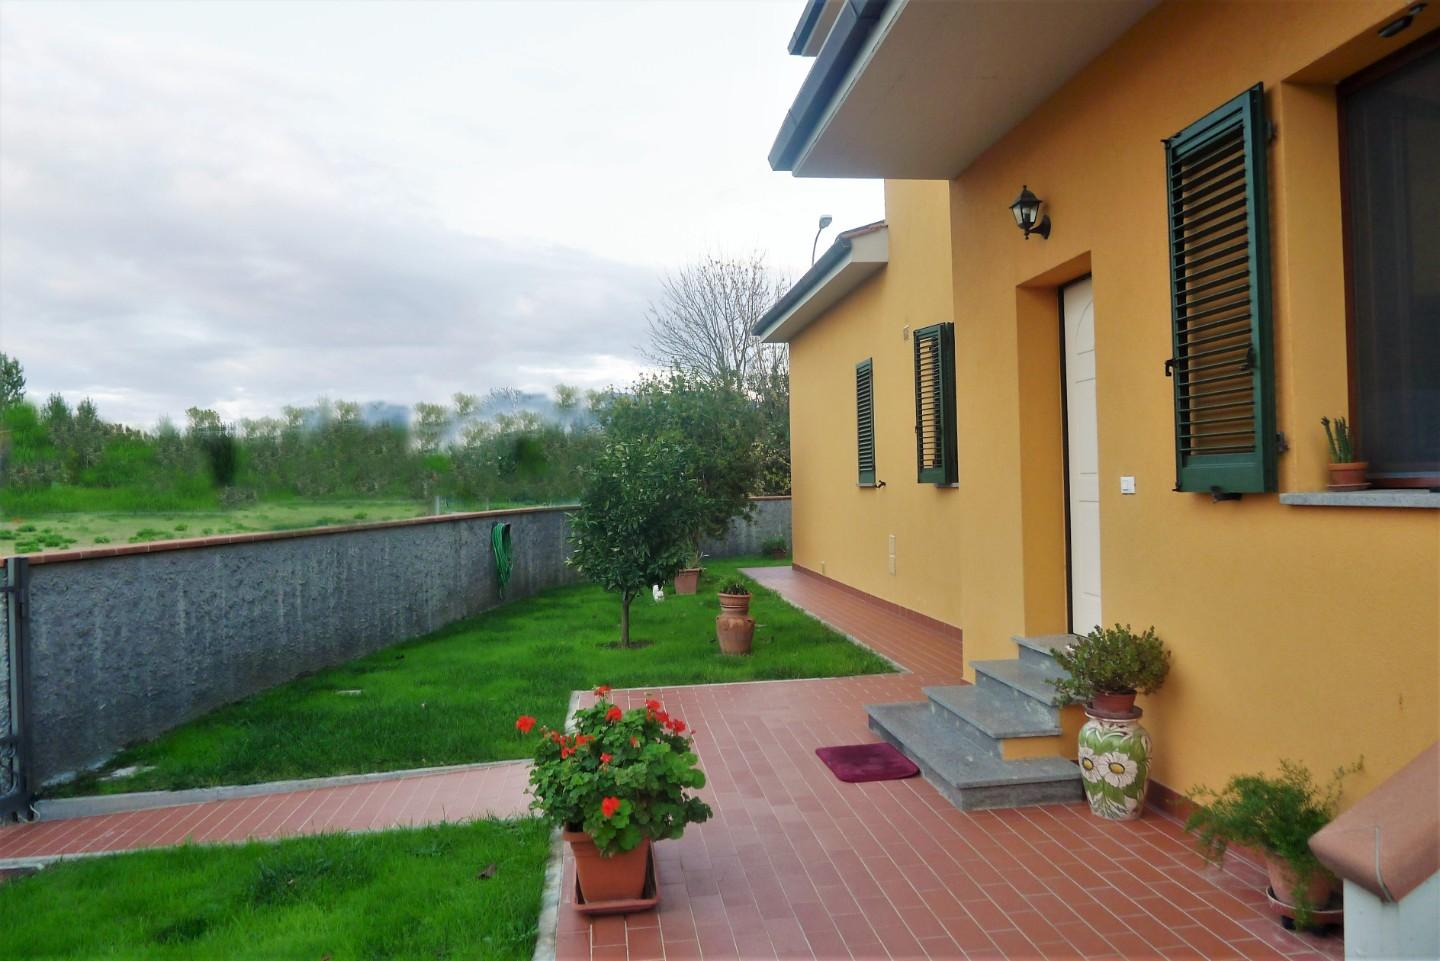 Single-family house for sale in Cascina (PI)